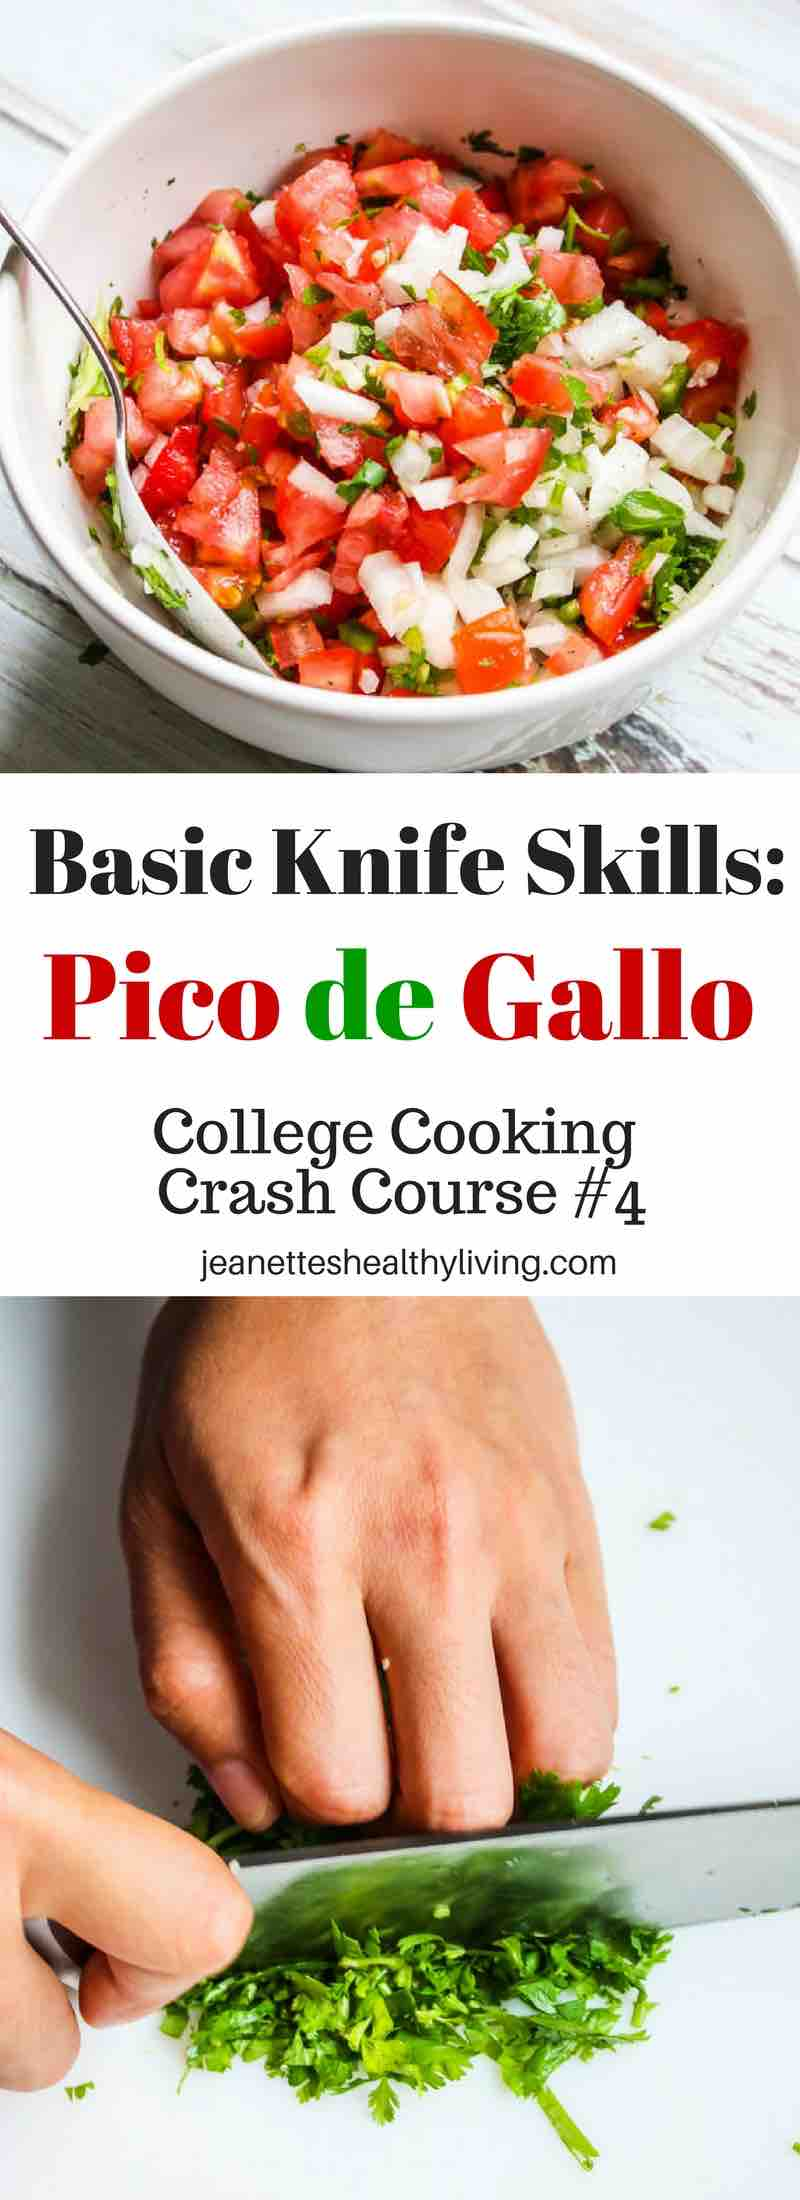 Pico de Gallo - learn basic knife skills: chopping, slicing, dicing, mincing